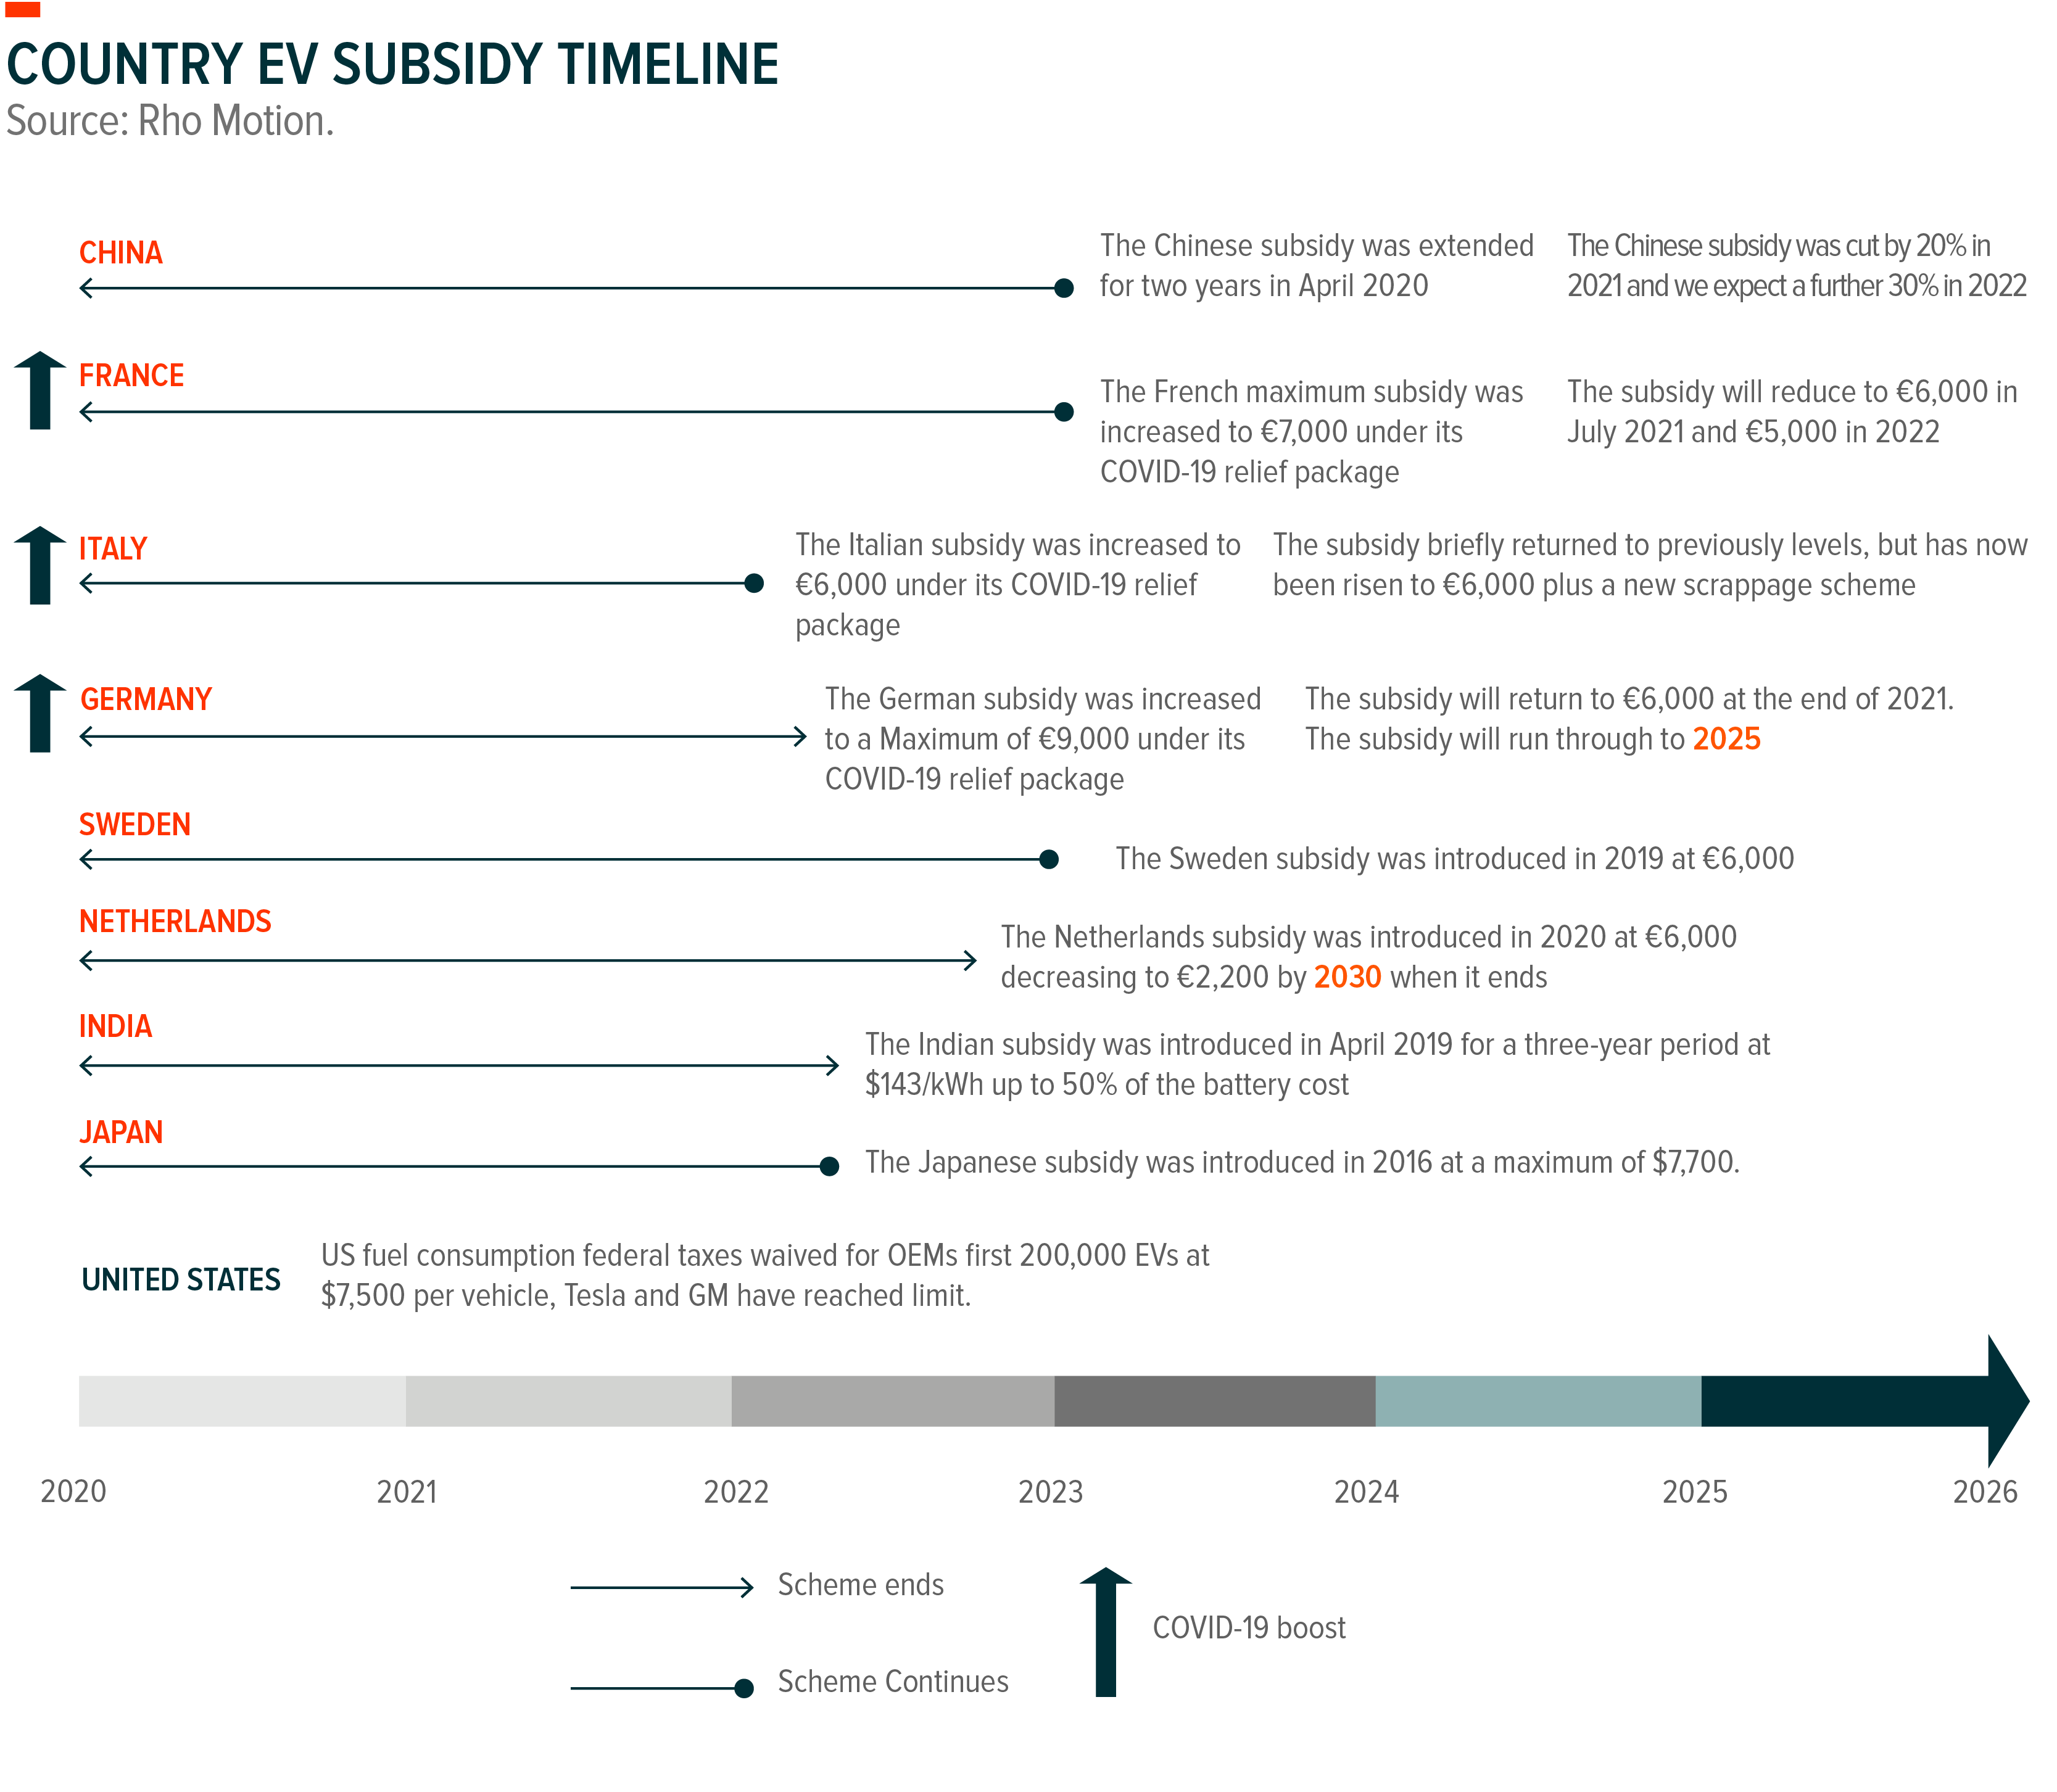 Country EV Subsidy Timeline